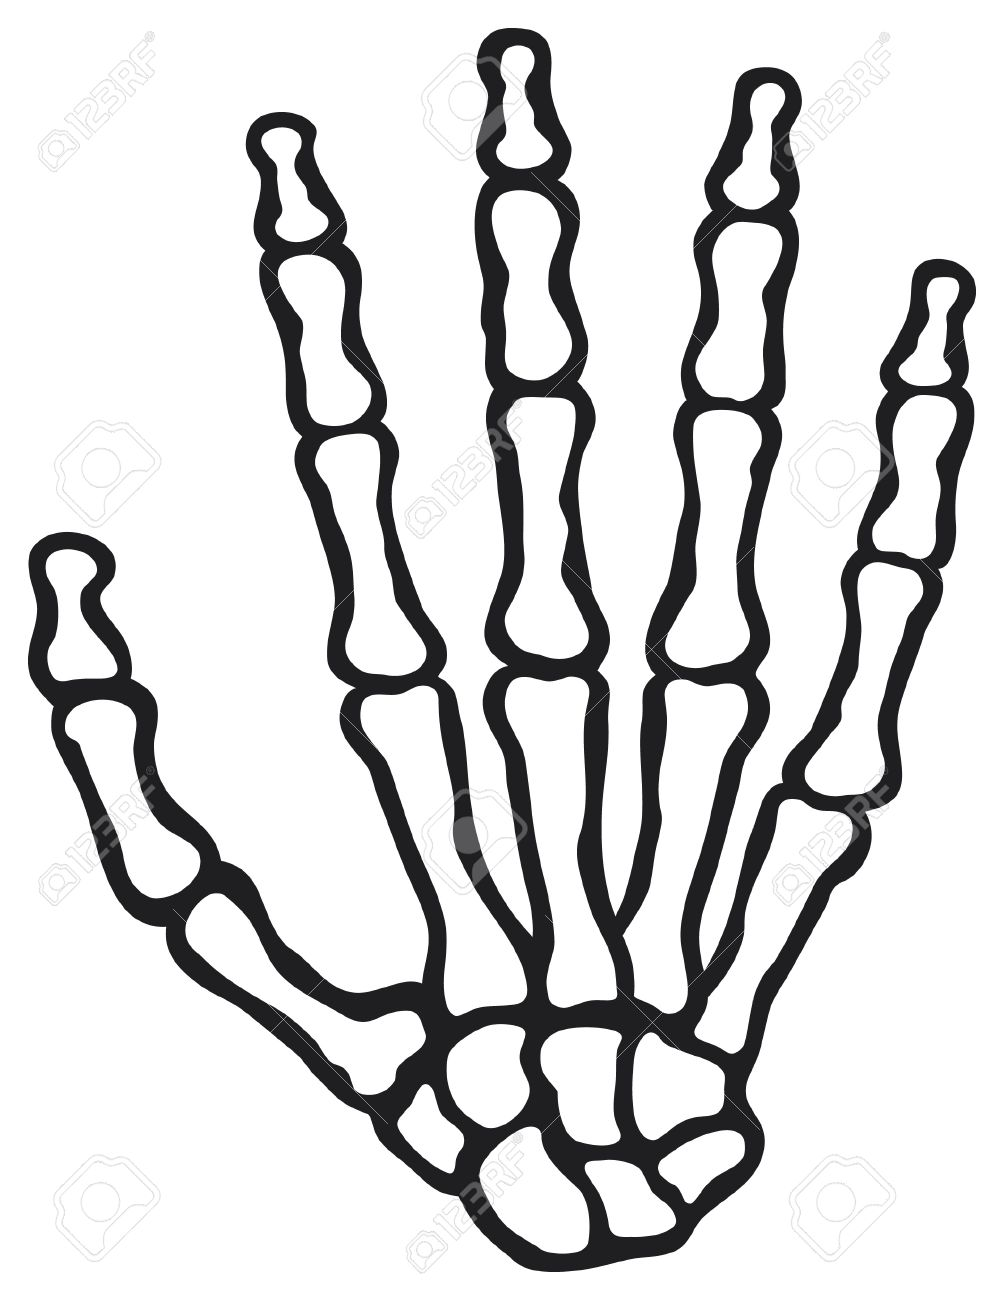 Human Skeleton Hand Vector Human Hand Bones Royalty Free Cliparts ...